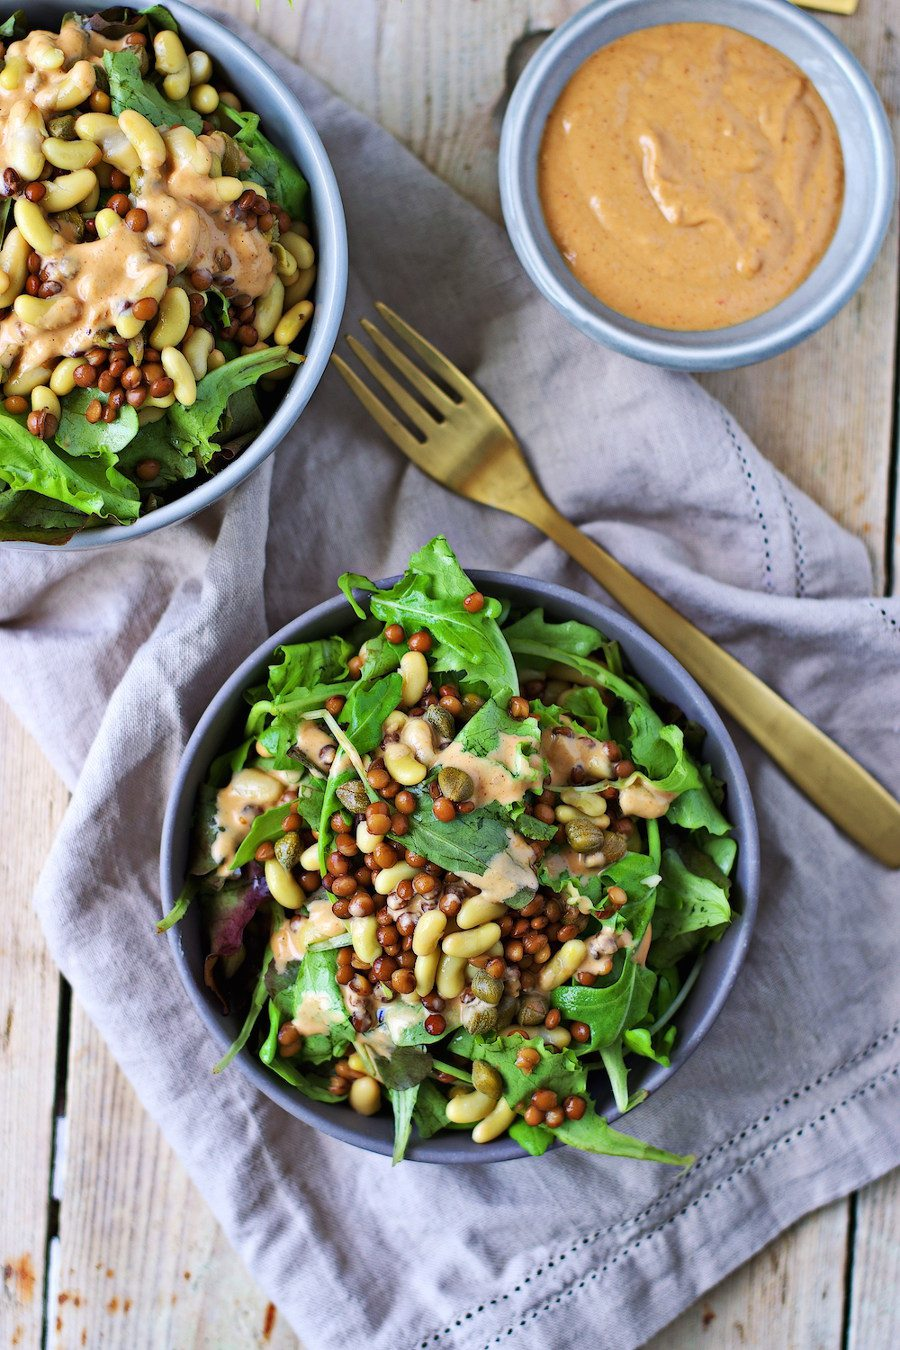 Two bowls of the high Protein Salad with a small bowl of dressing on the side.